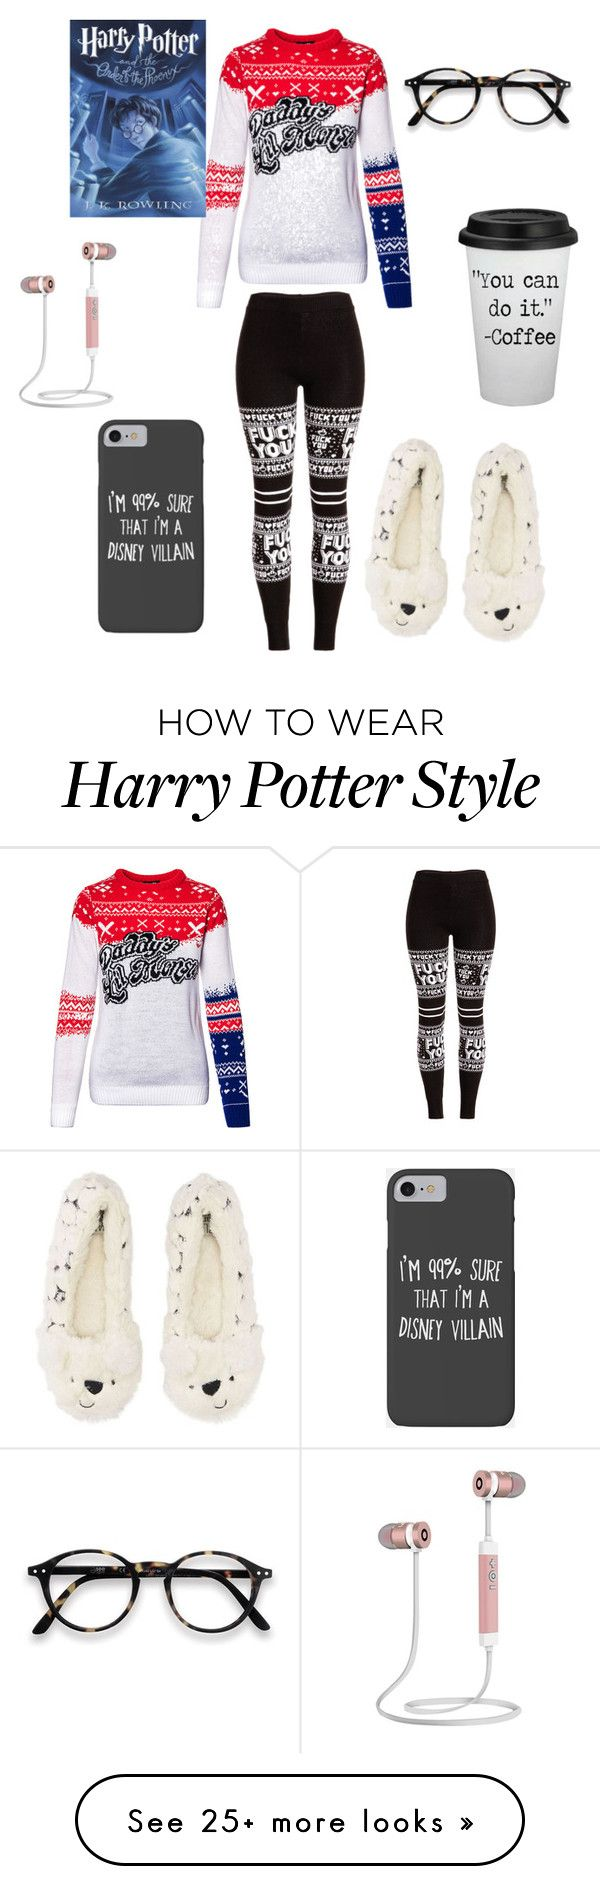 """#2 before Xmas"" by elena-horror999 on Polyvore featuring Disney"